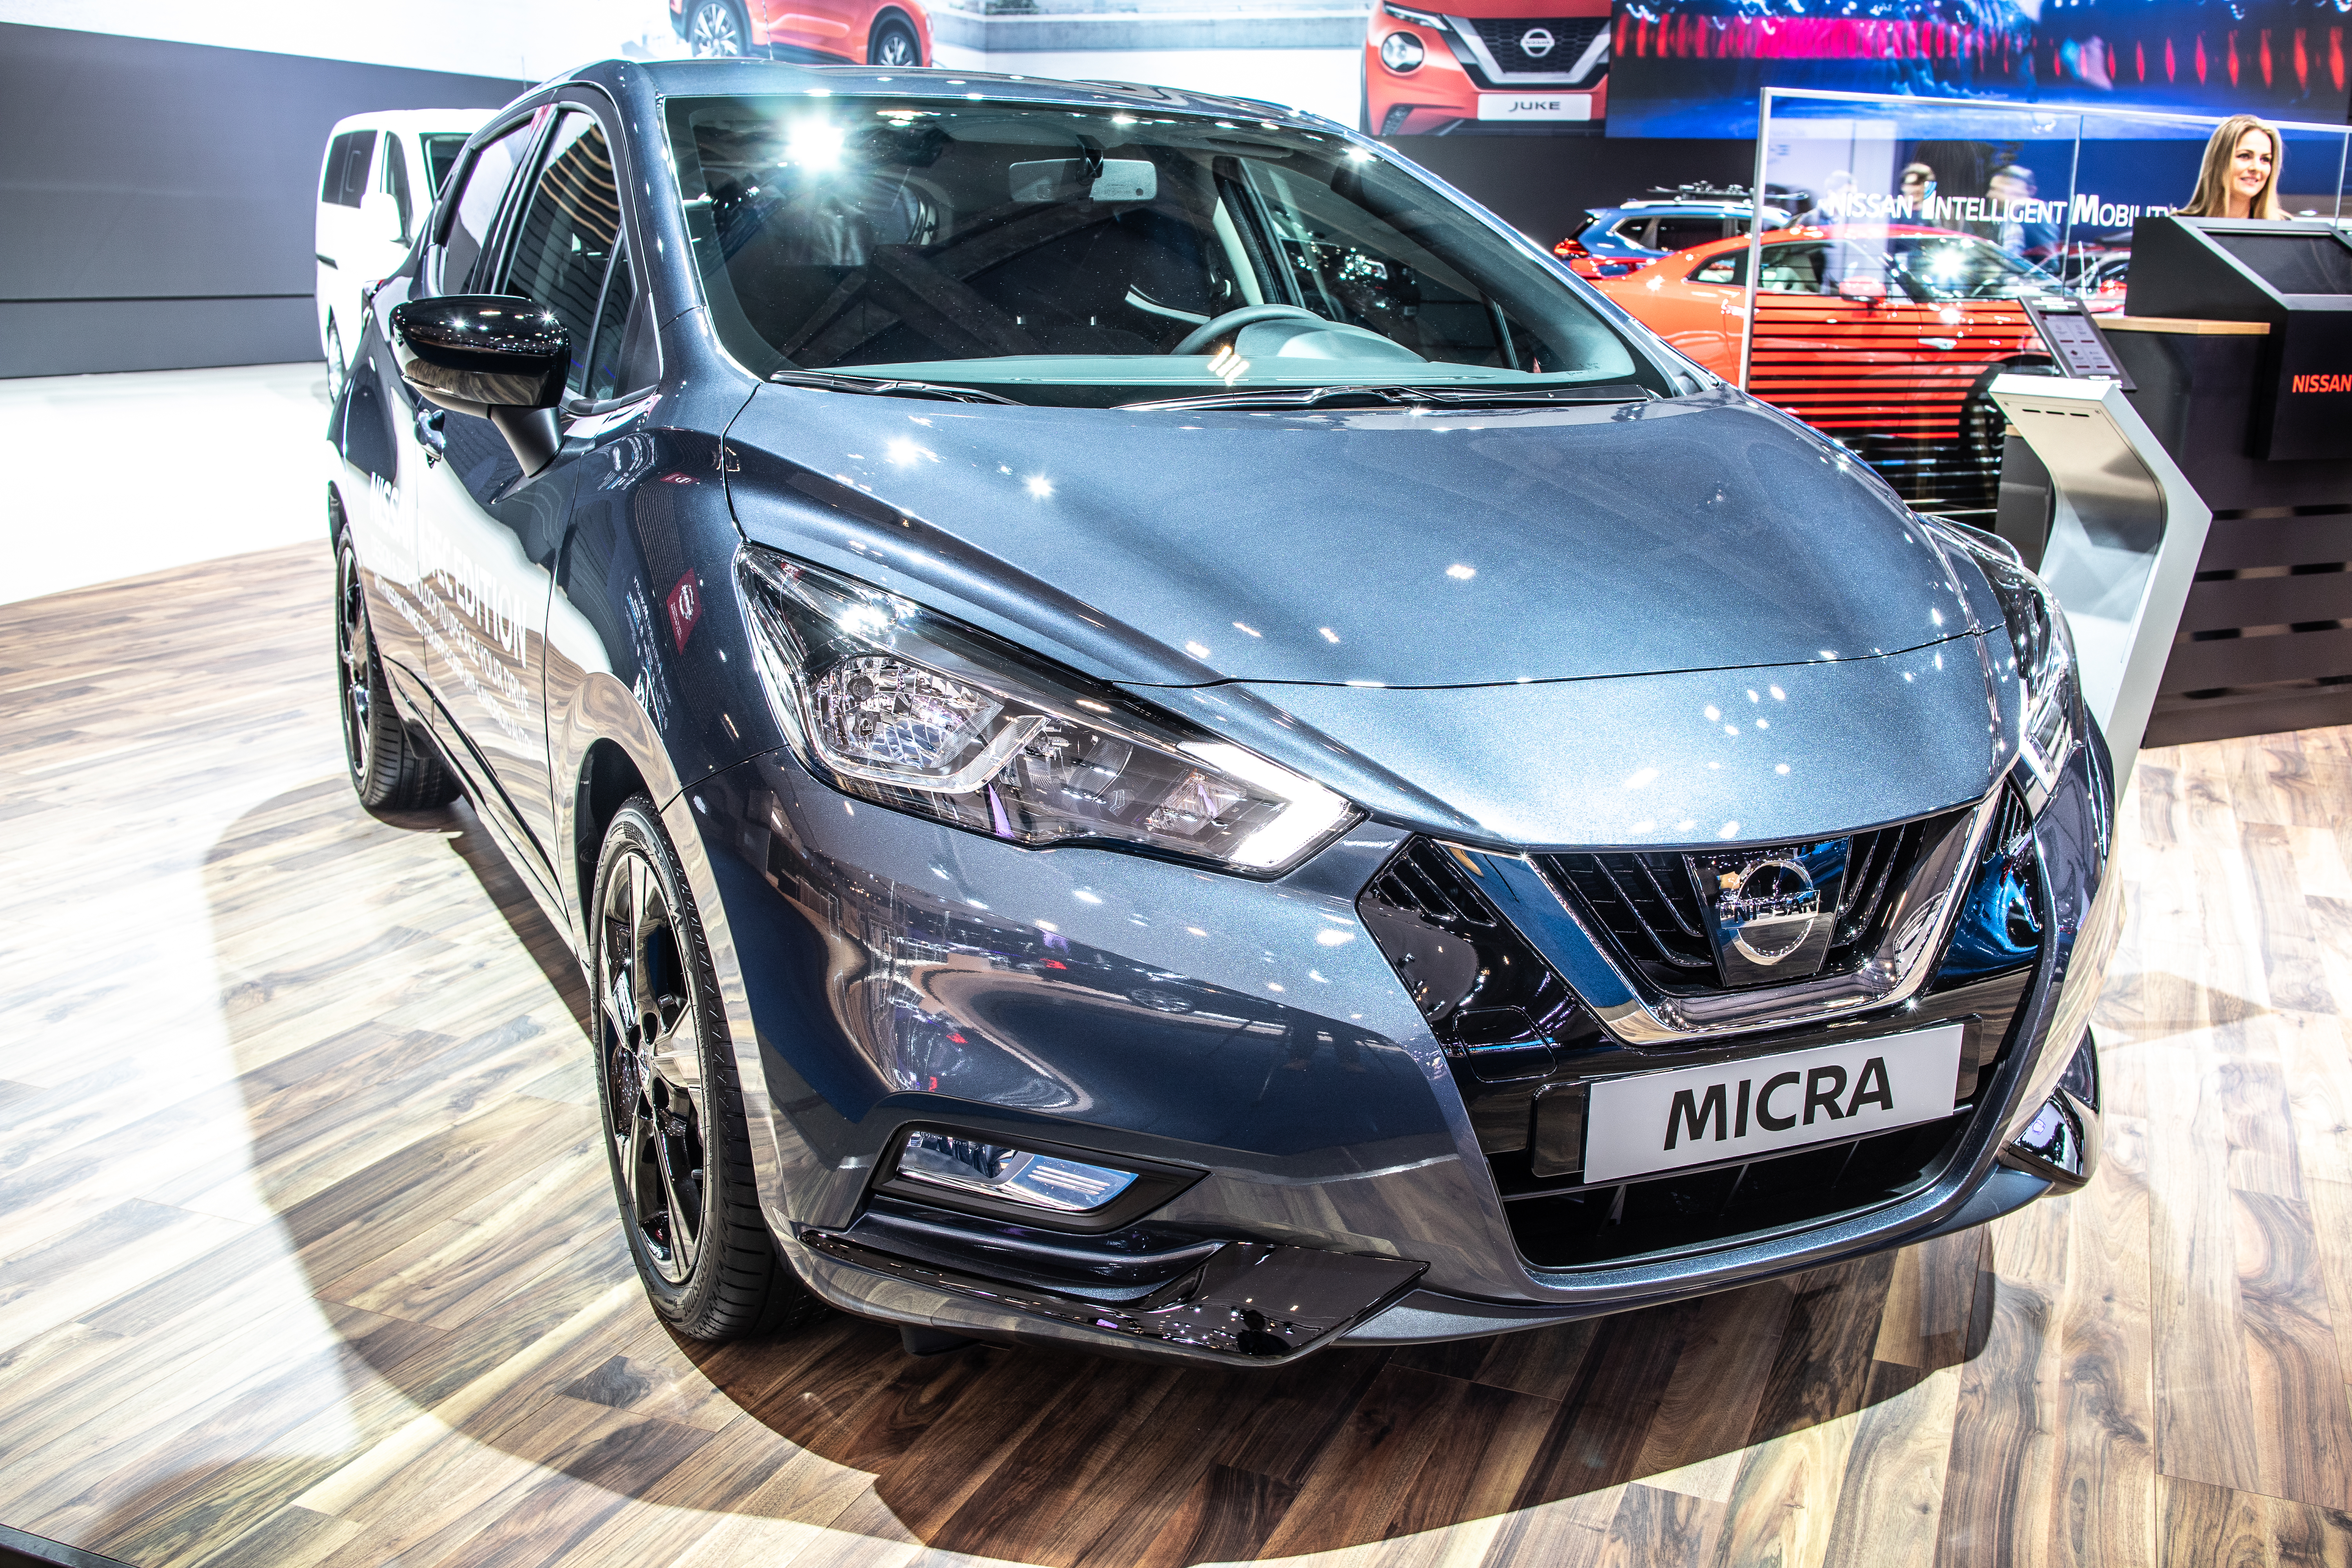 where to get a reasonable nissan micra car battery price